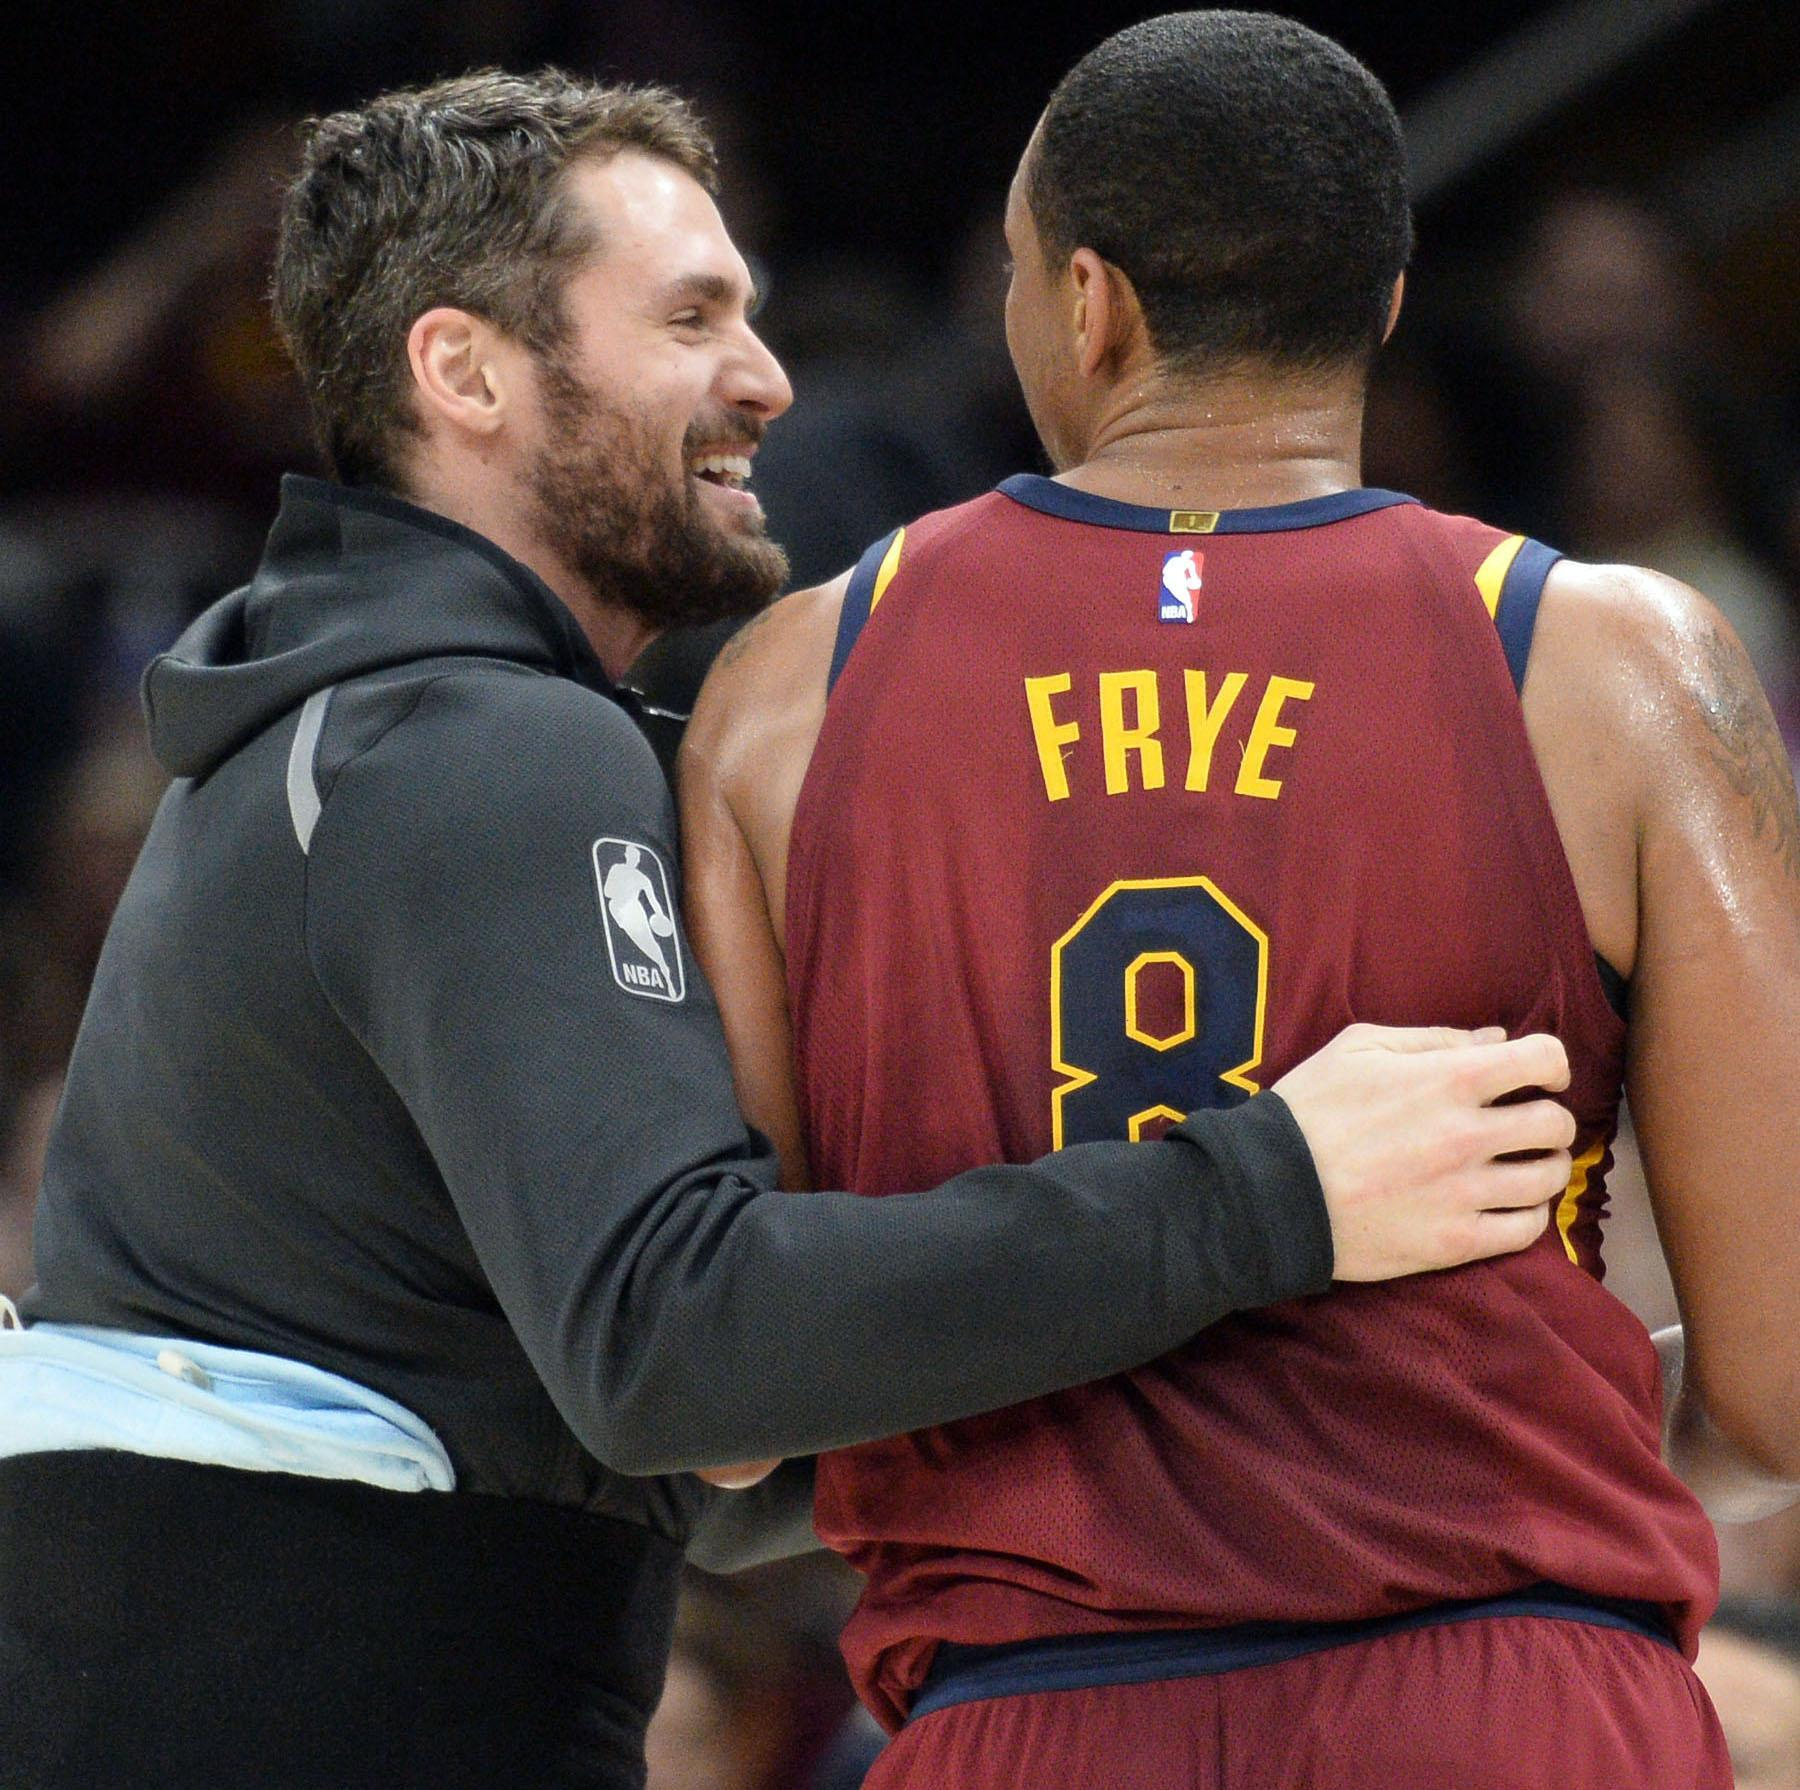 Cavaliers' Kevin Love (foot) questionable for Saturday